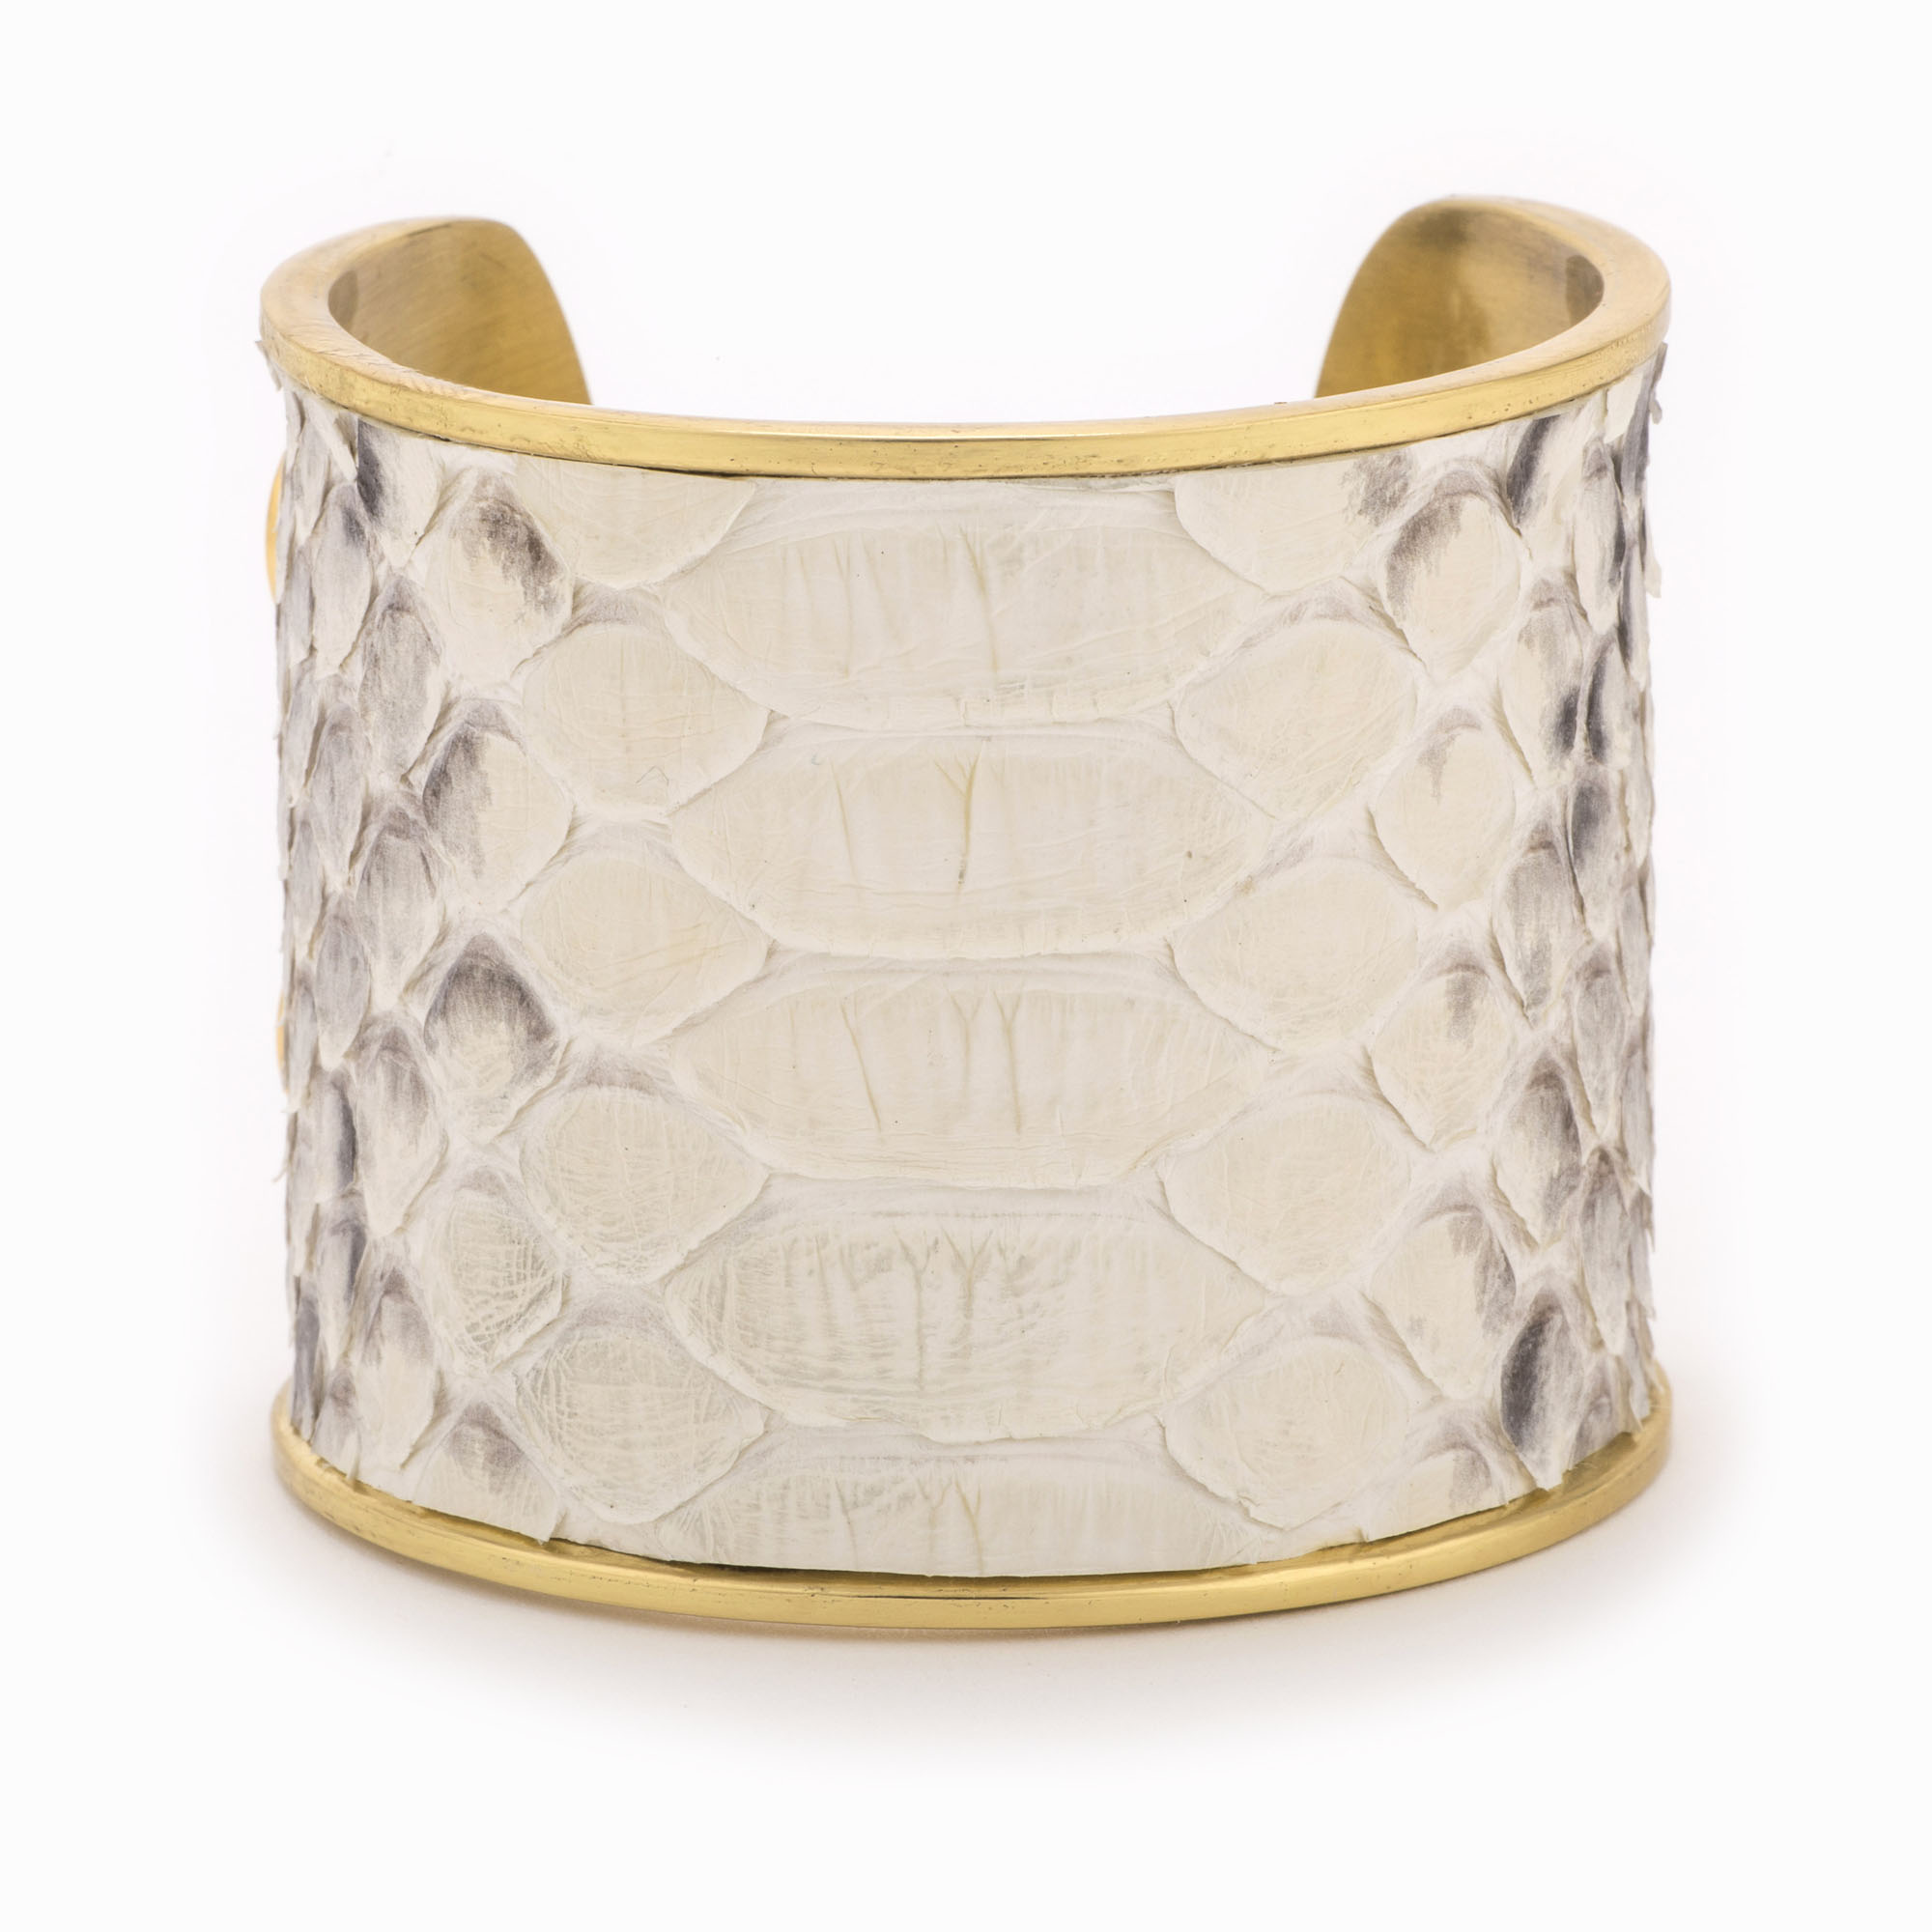 Large gold cuff with a black and white python pattern.